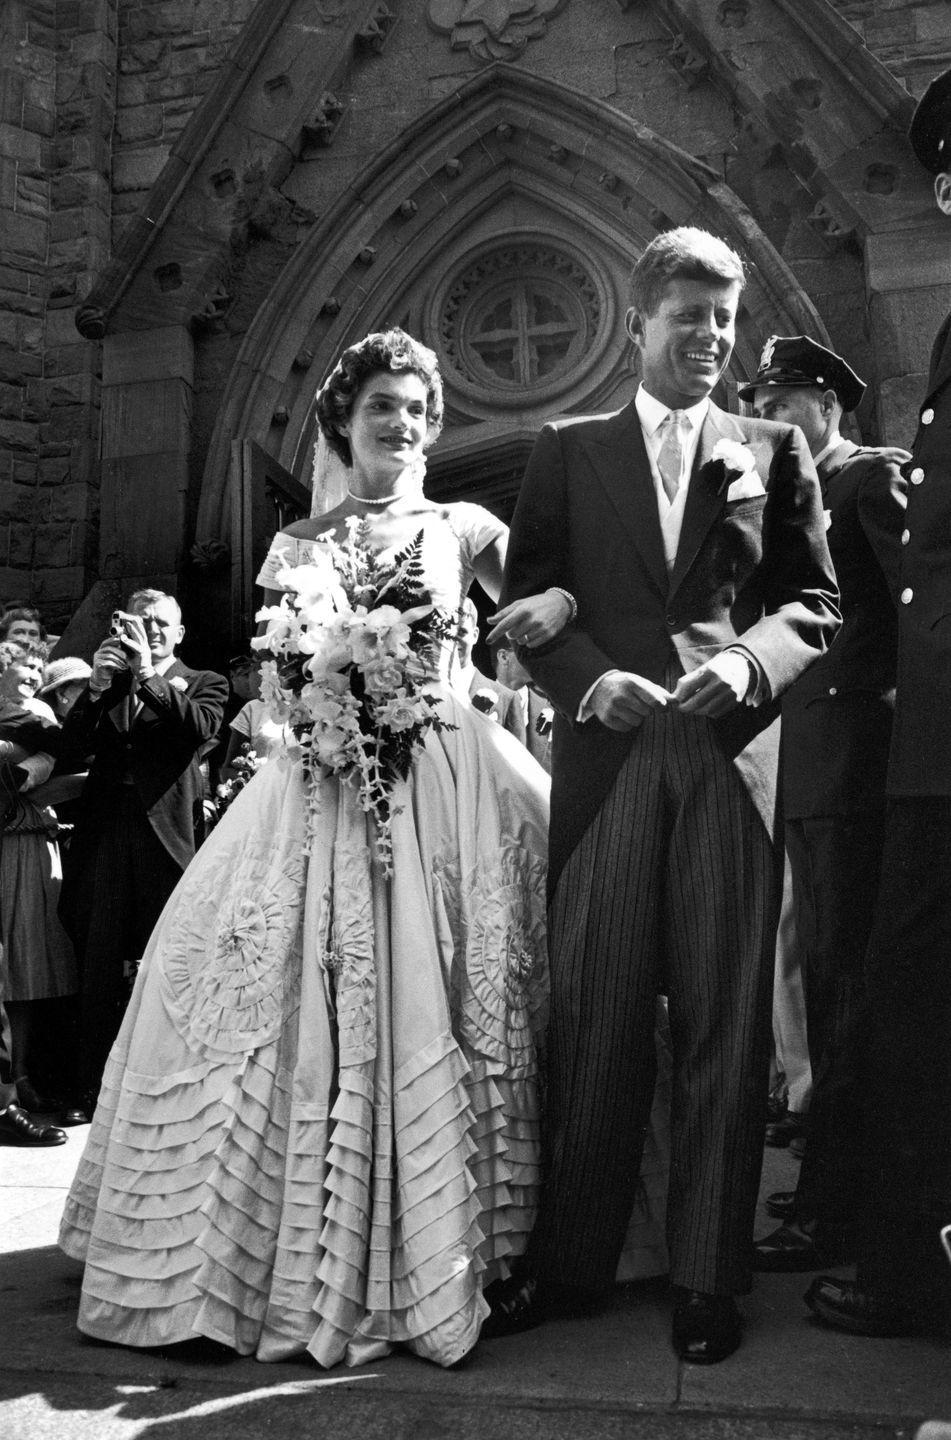 """<p>Jacqueline Bouvier married John F. Kennedy on September 12, 1953 in Newport, Rhode Island. Her gorgeous wedding gown was created by African-American fashion designer <a href=""""https://www.racked.com/2016/9/30/13064294/fashion-designer-ann-lowe"""" rel=""""nofollow noopener"""" target=""""_blank"""" data-ylk=""""slk:Ann Lowe"""" class=""""link rapid-noclick-resp"""">Ann Lowe</a>—who didn't receive credit for the dress until much later in life—and is now on display at the Kennedy Library in Boston. The dress consisted of 50 yards of fabric made out of <a href=""""https://www.vogue.com/article/jackie-kennedy-wedding-to-john-f-kennedy"""" rel=""""nofollow noopener"""" target=""""_blank"""" data-ylk=""""slk:ivory-colored silk taffeta"""" class=""""link rapid-noclick-resp"""">ivory-colored silk taffeta</a> and Jackie wore a lace wedding veil that belonged to her grandmother. She also wore a single strand pearl necklace, which was a family heirloom, and a diamond pin from her parents and a diamond bracelet from her groom. </p>"""